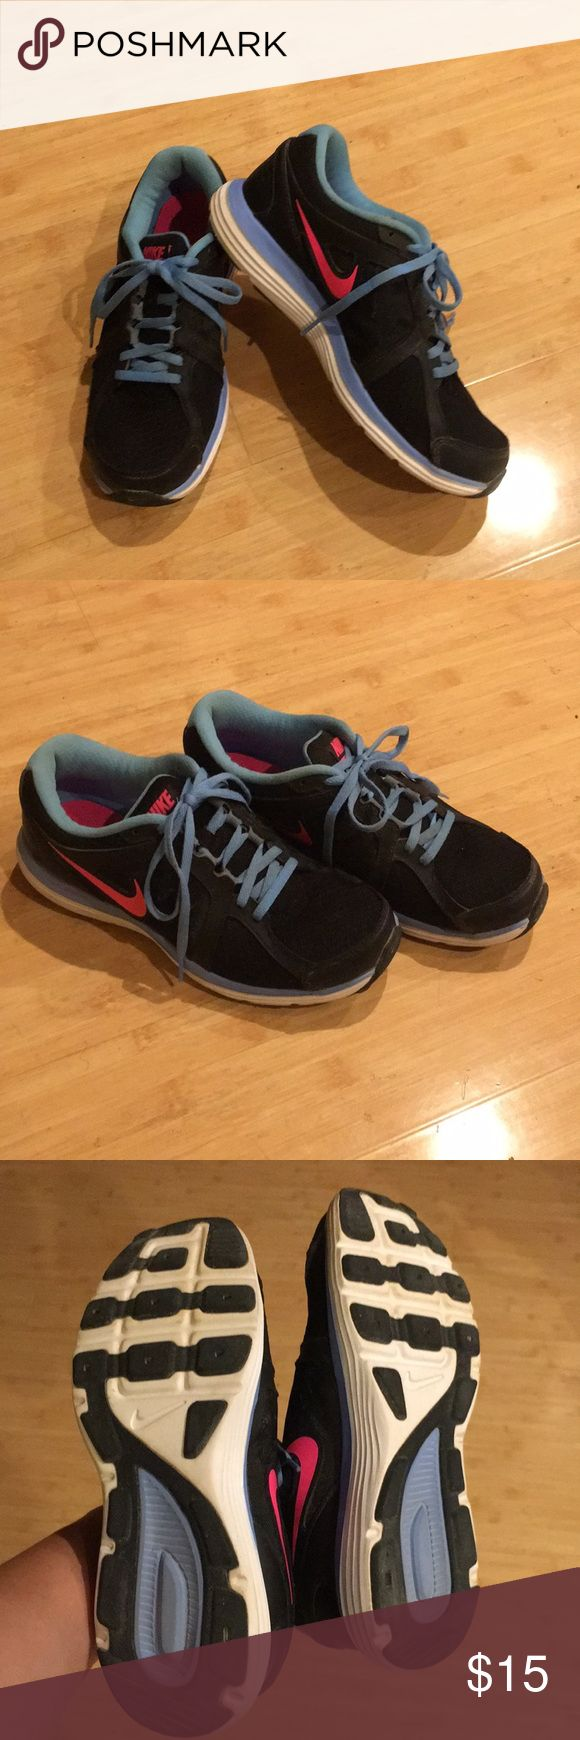 NIKE Dual Fusion rubber shoes in great condition. NIke Dual Fusion in great condition. Size 6.5 Nike Shoes Athletic Shoes